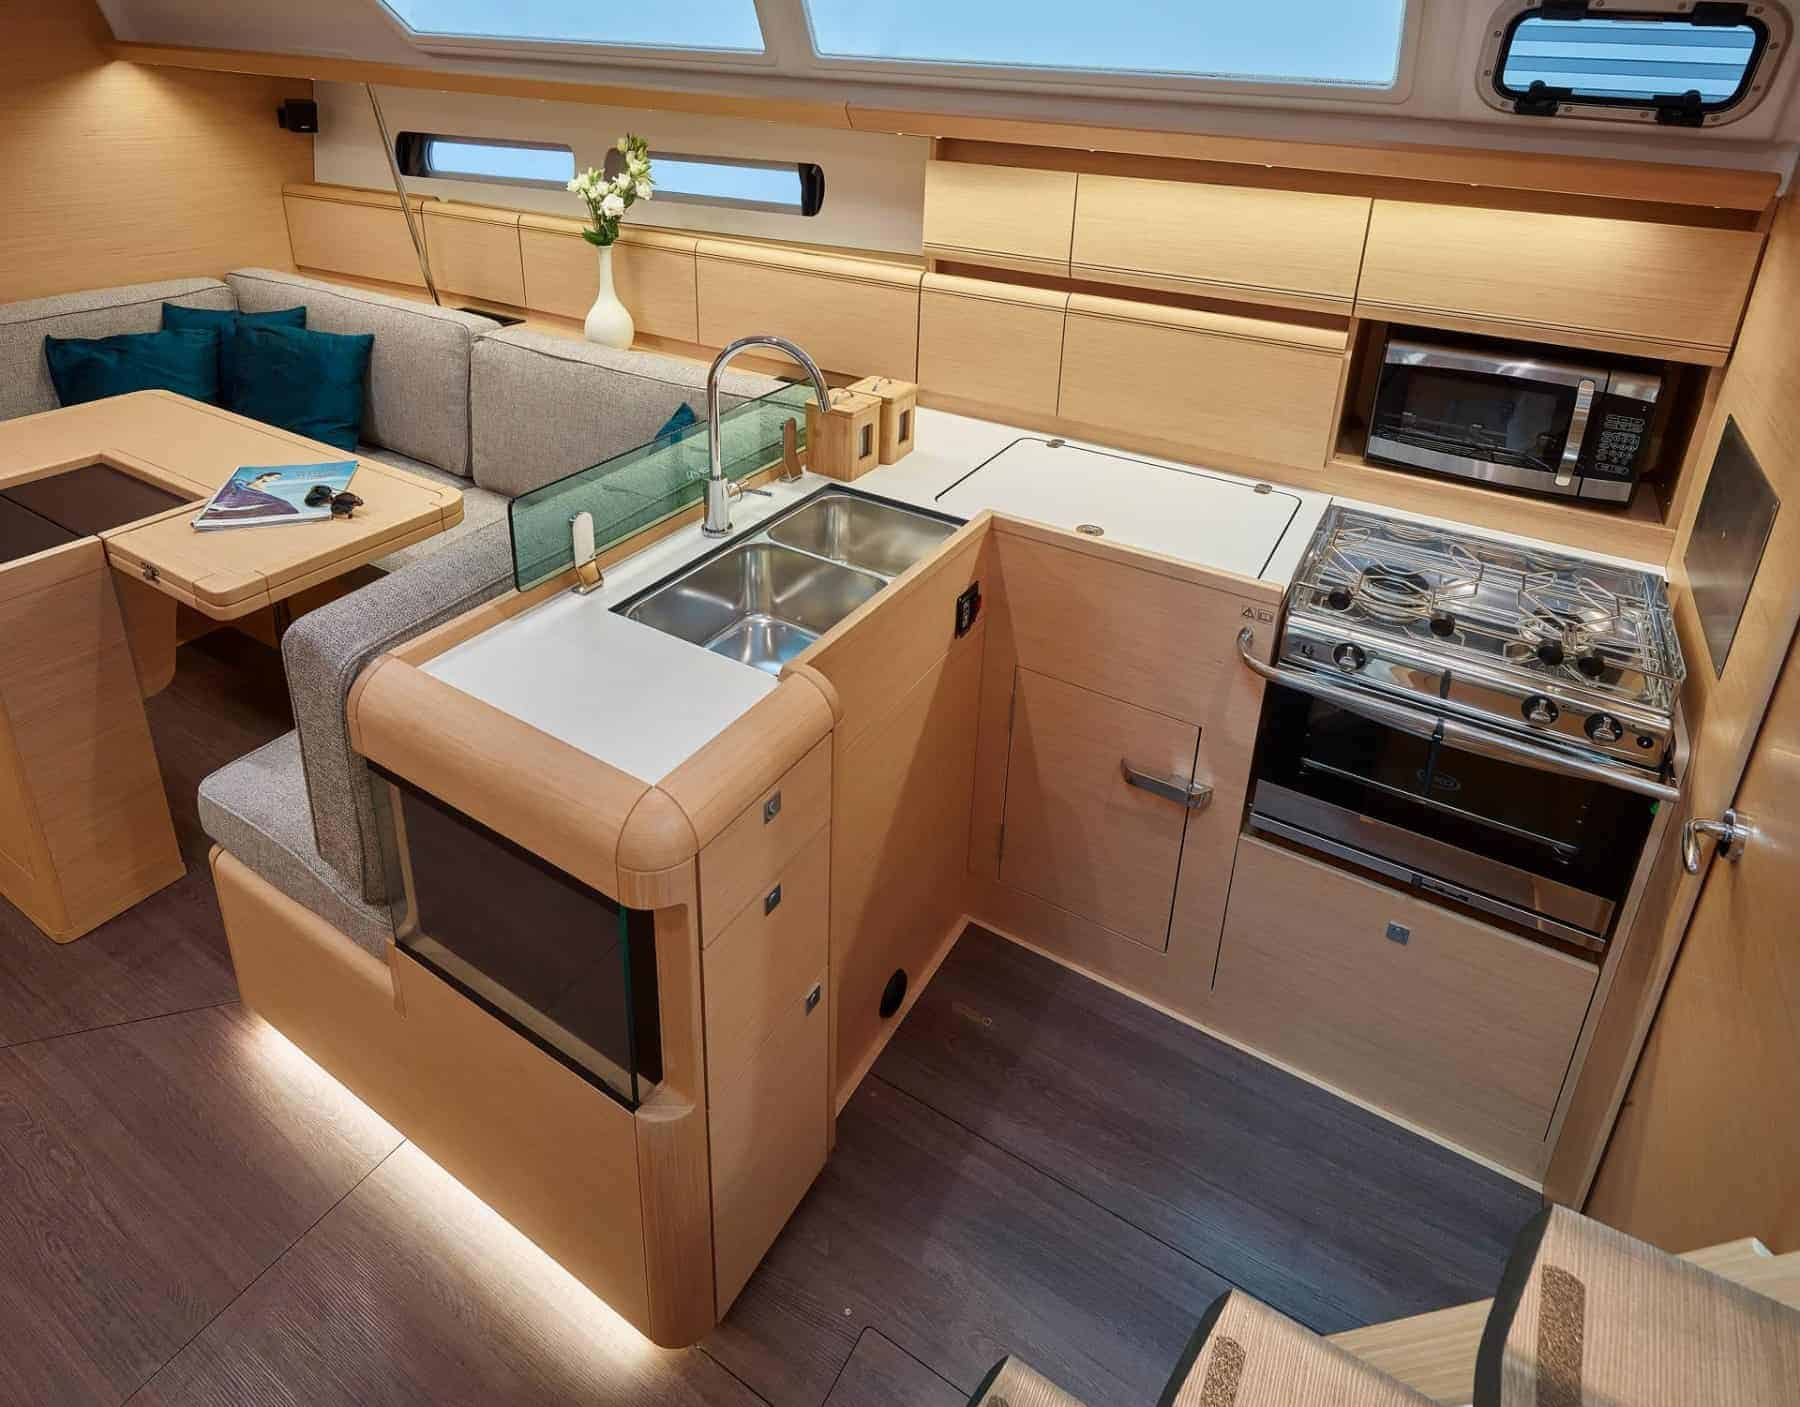 Galley of Jeanneau Sun Odyssey 449 with stove, sink and microwave oven